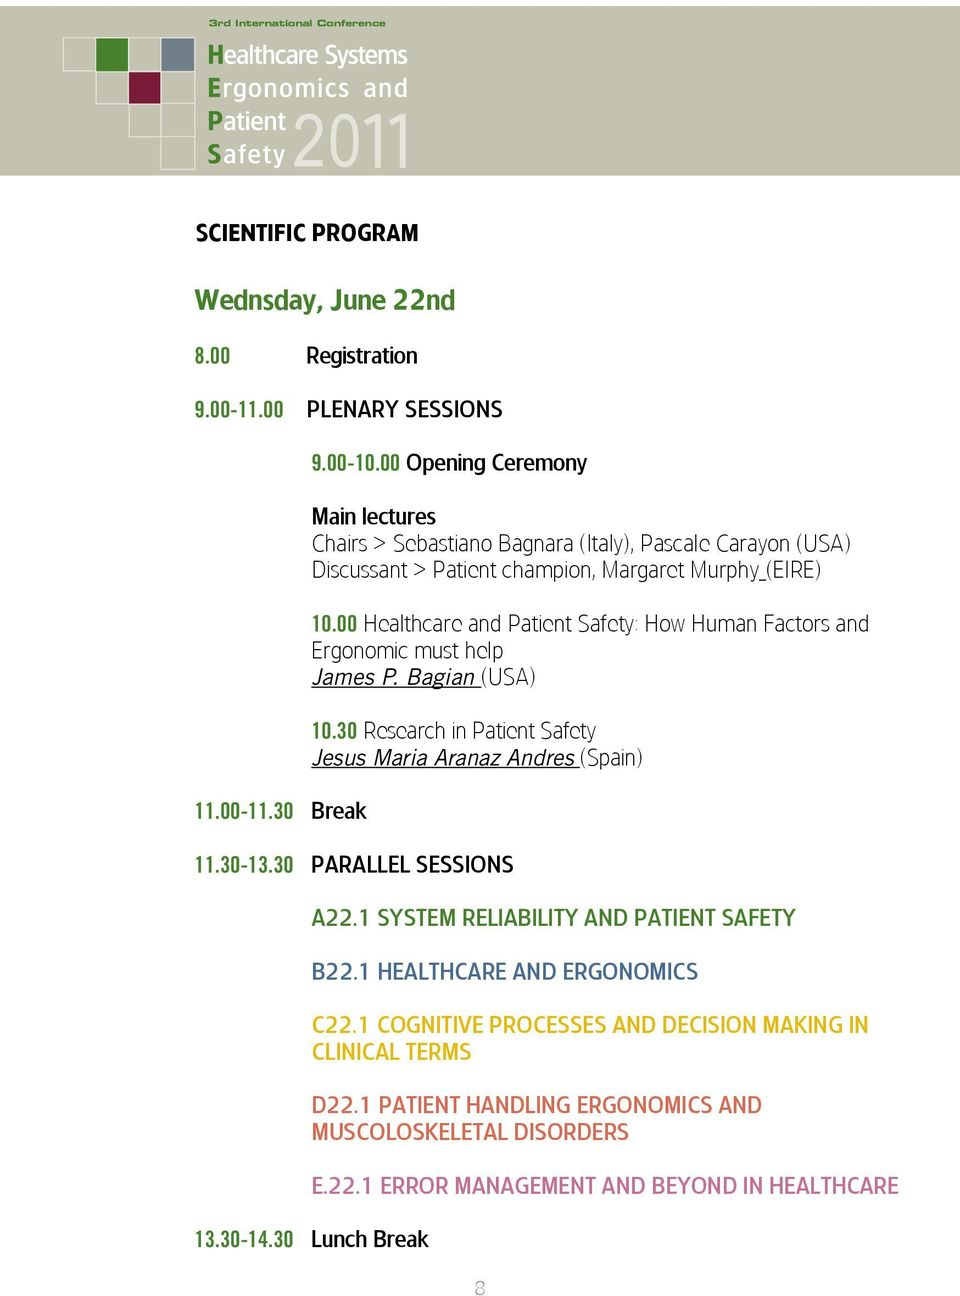 00 Healthcare and Patient Safety: How Human Factors and Ergonomic must help James P. Bagian (USA) 10.30 Research in Patient Safety Jesus Maria Aranaz Andres (Spain) 11.30-13.